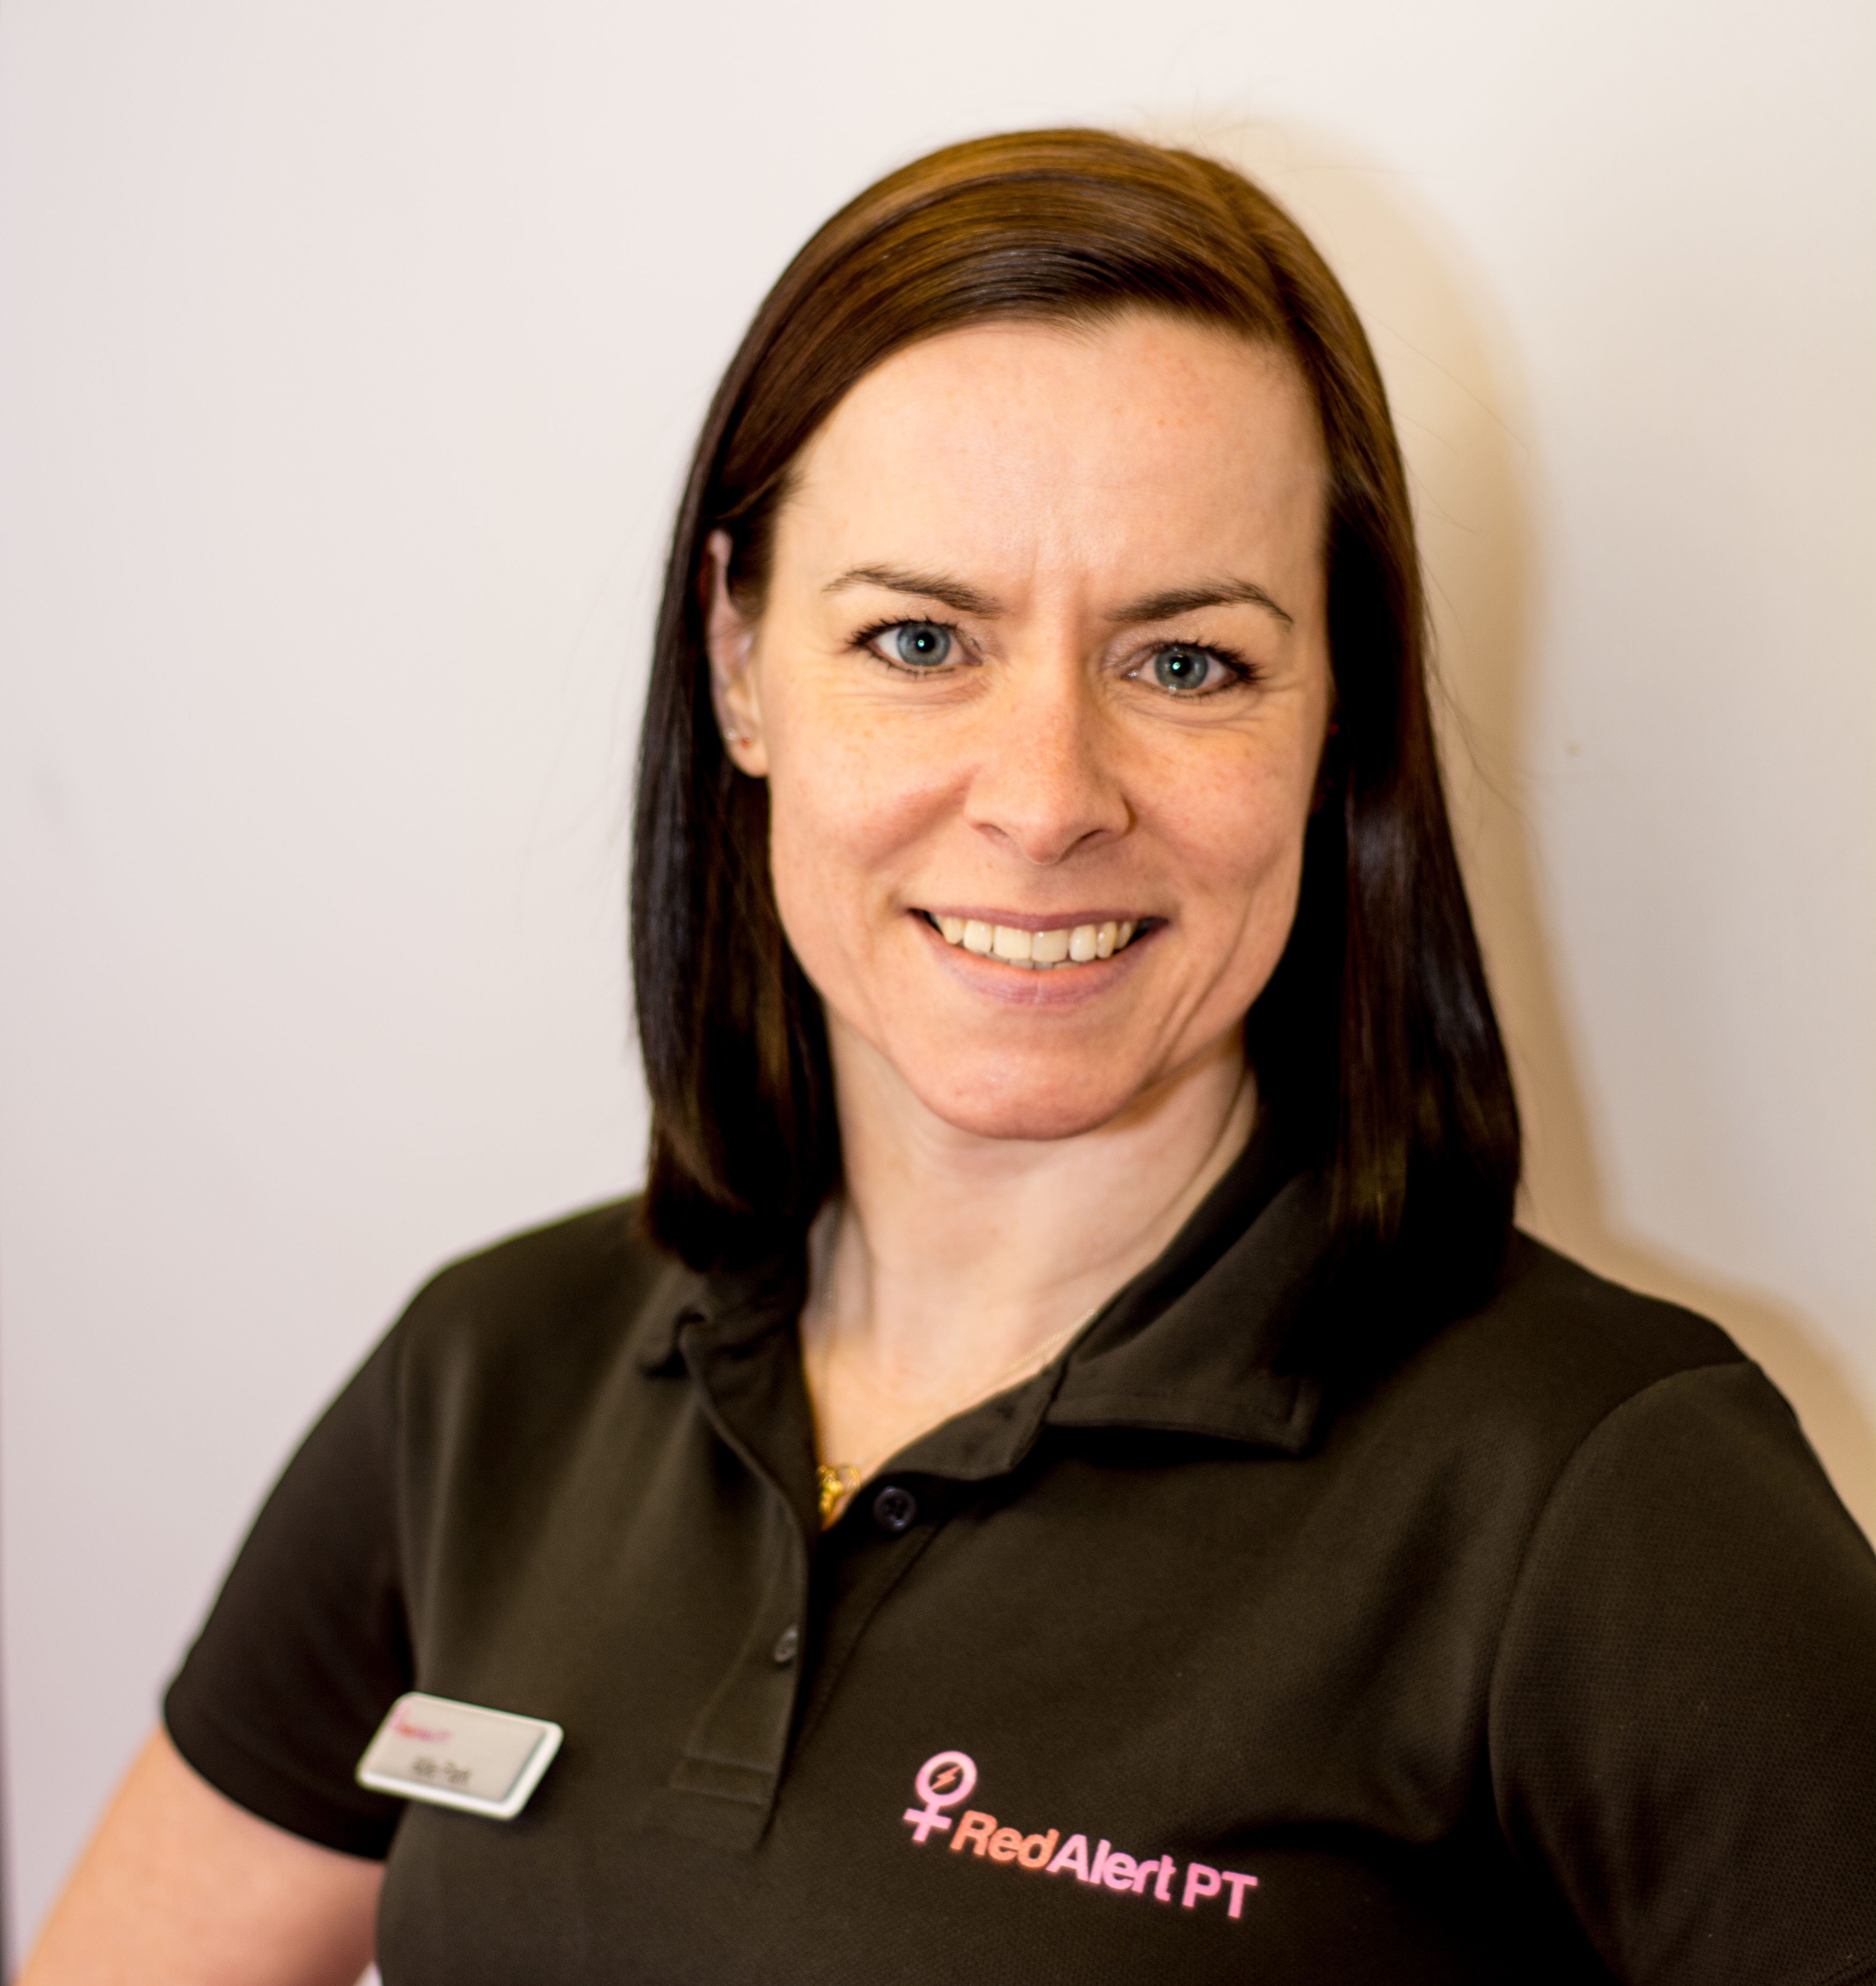 Allie Park, RedAlert PT, personal training, post natal fitness, St Albans, harpenden, personal trainer, exercise, weight loss